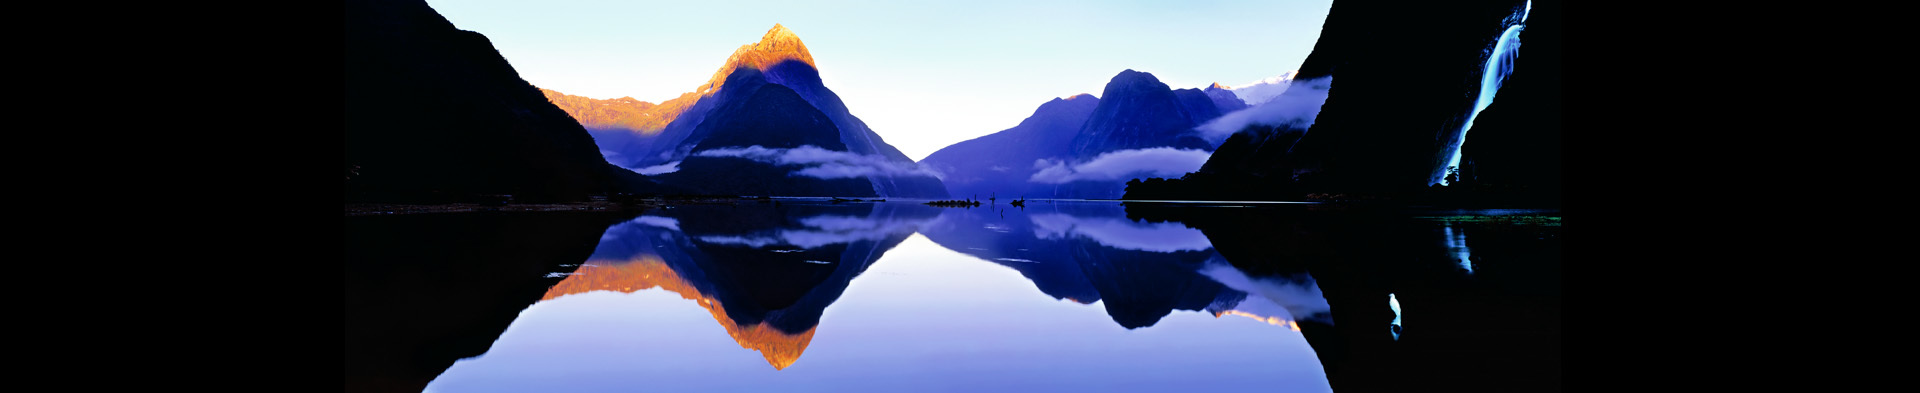 <div class='title'>           Milford Sound | New Zealand         </div>                 <div class='description'>           Panoramic photo of Milford Sound in New Zealand         </div>